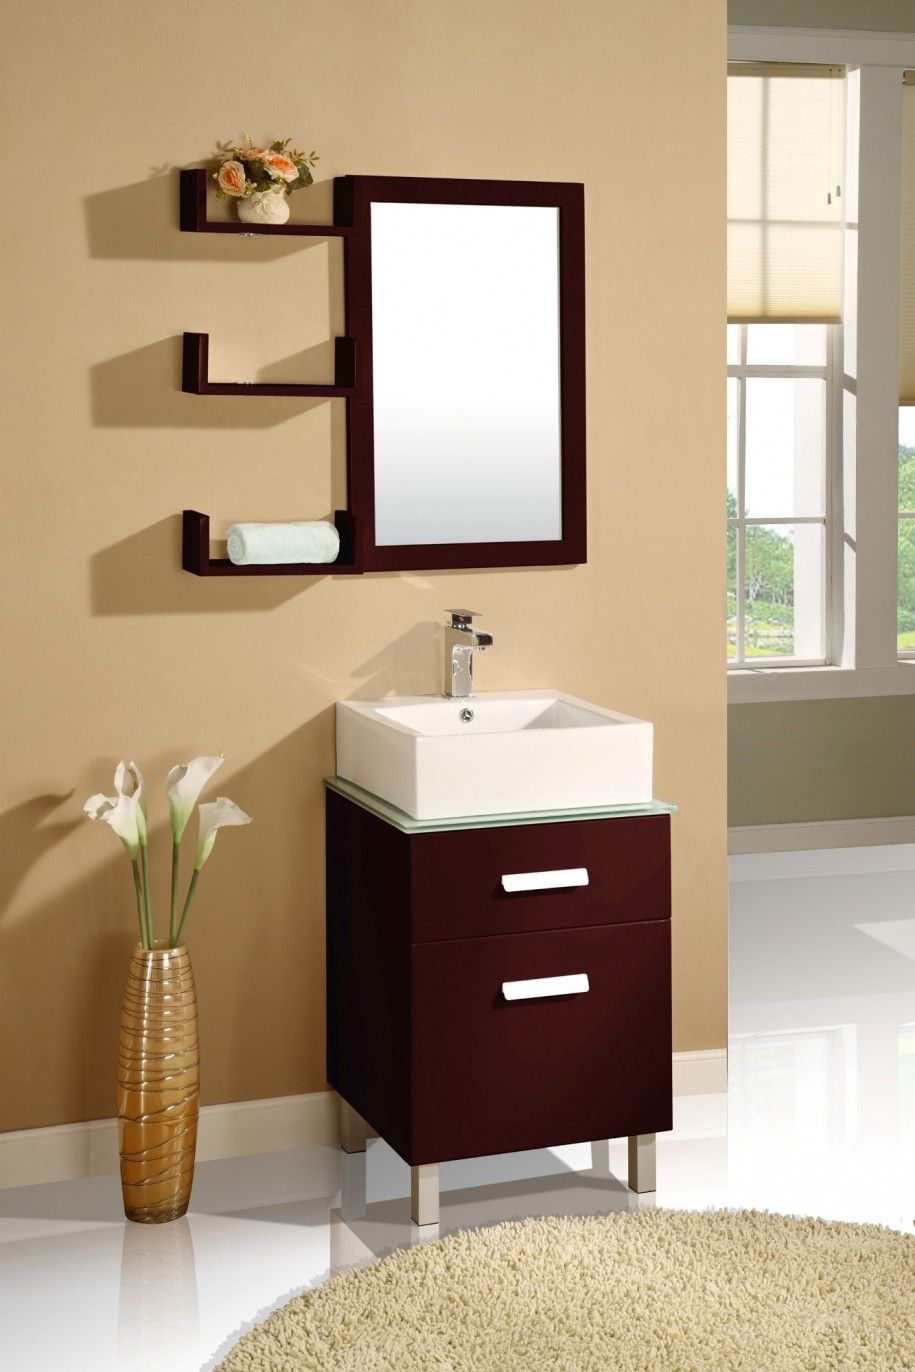 Wooden bathroom mirror cabinets - Simple Dark Wood Bathroom Mirrors With Shelves And Small Dark Wood Vanity Cabinet And White Wash